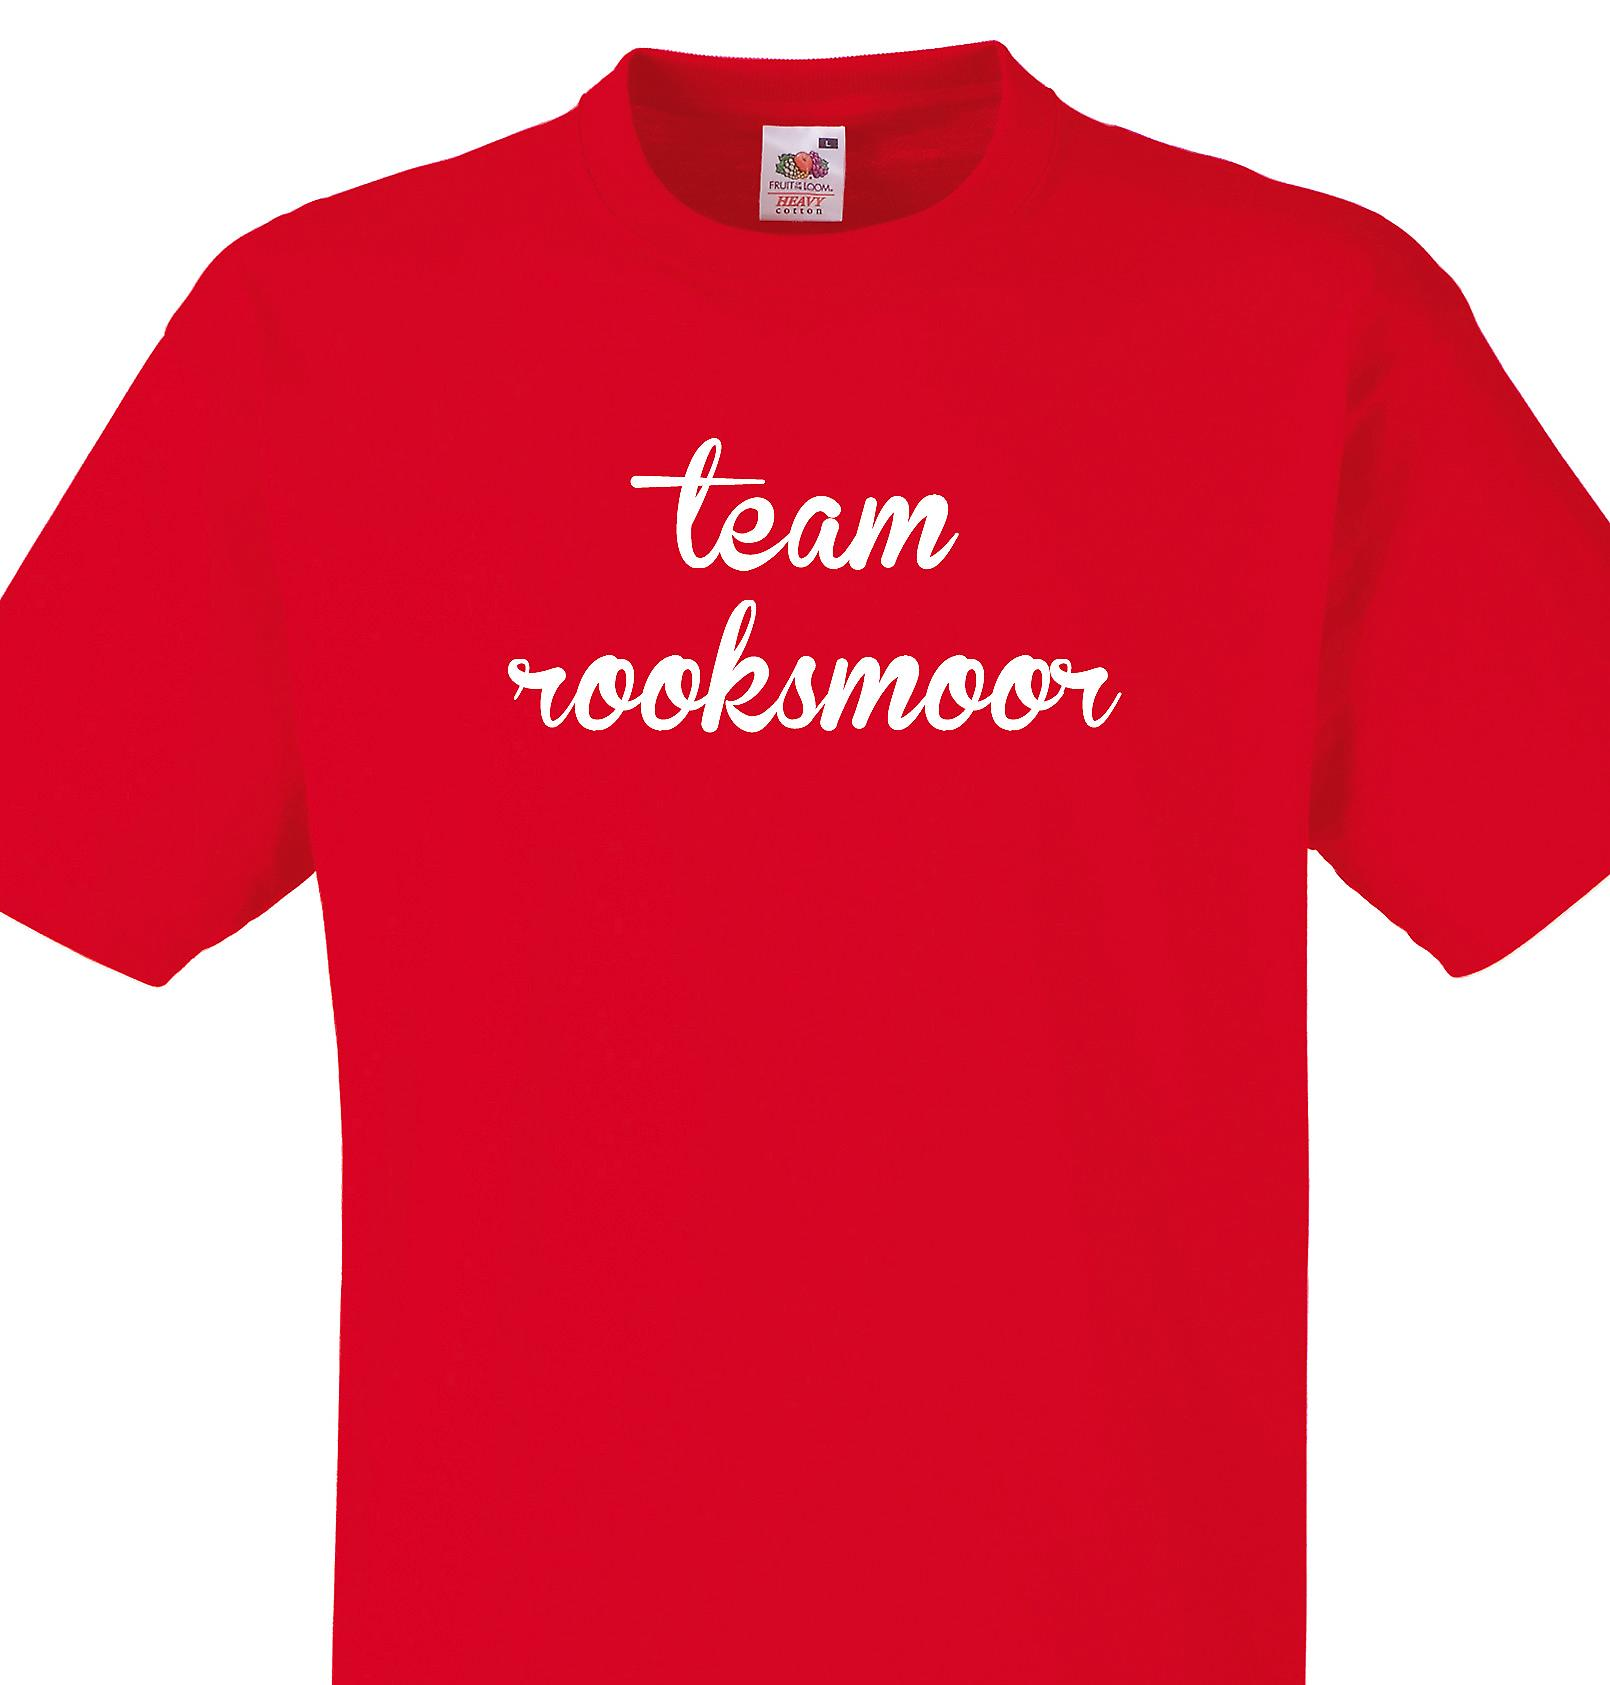 Team Rooksmoor Red T shirt